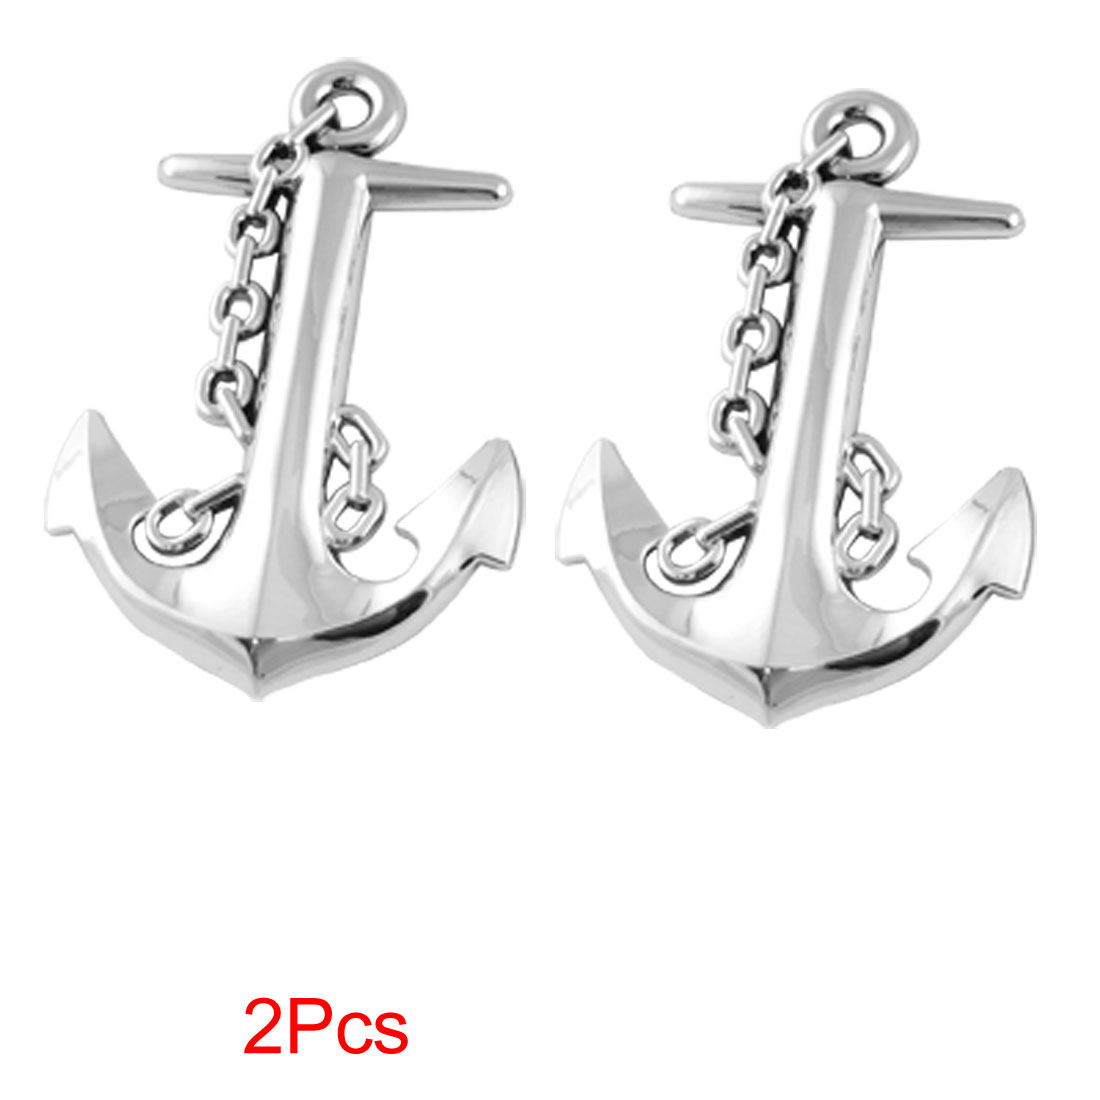 Auto Silver Tone 3D Anchor Shape Adhesive Sticker Badge Decals 2Pcs